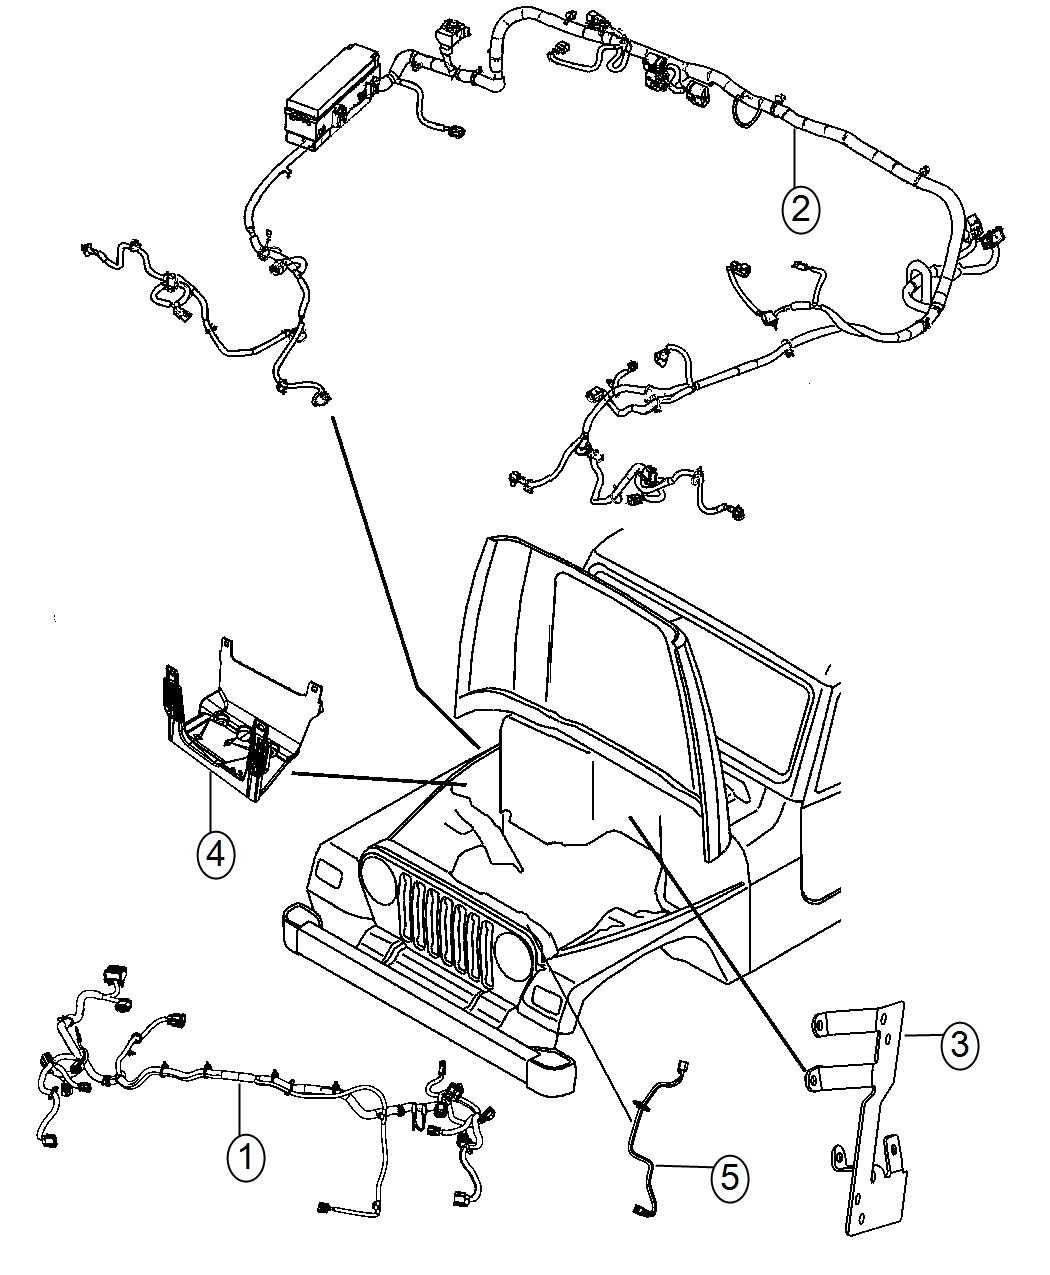 tags: #jeep yj coil wiring diagram#wrangler wiring diagram#jeep yj ignition  switch wiring#wrangler tj wiring diagram#1995 wrangler wiring diagram#1994